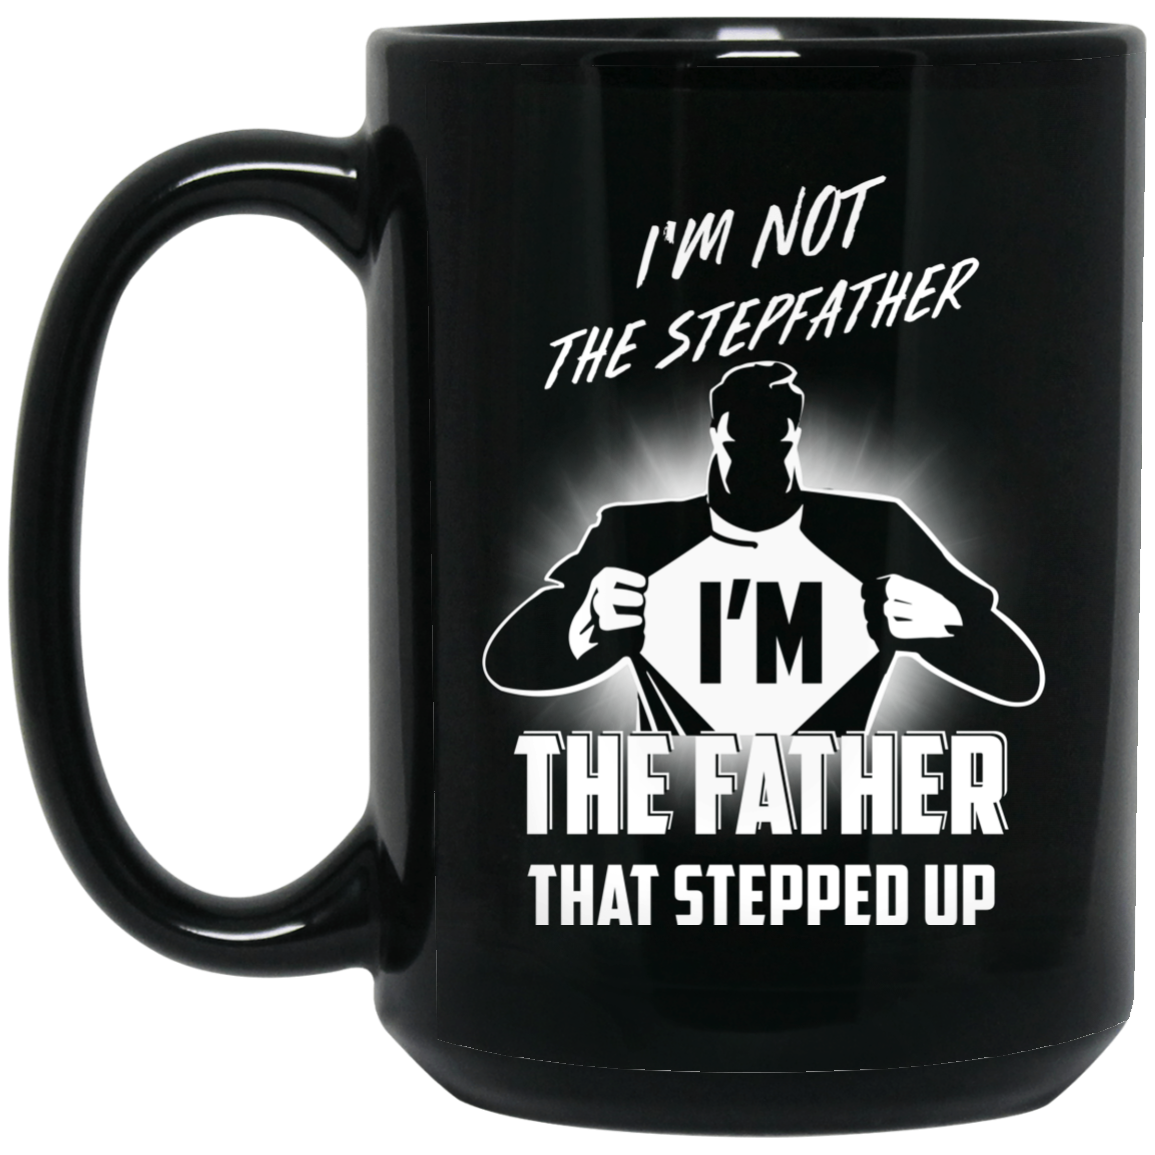 5d733ce9c I'm not stepfather I'm the father that stepped up coffee mugs ...